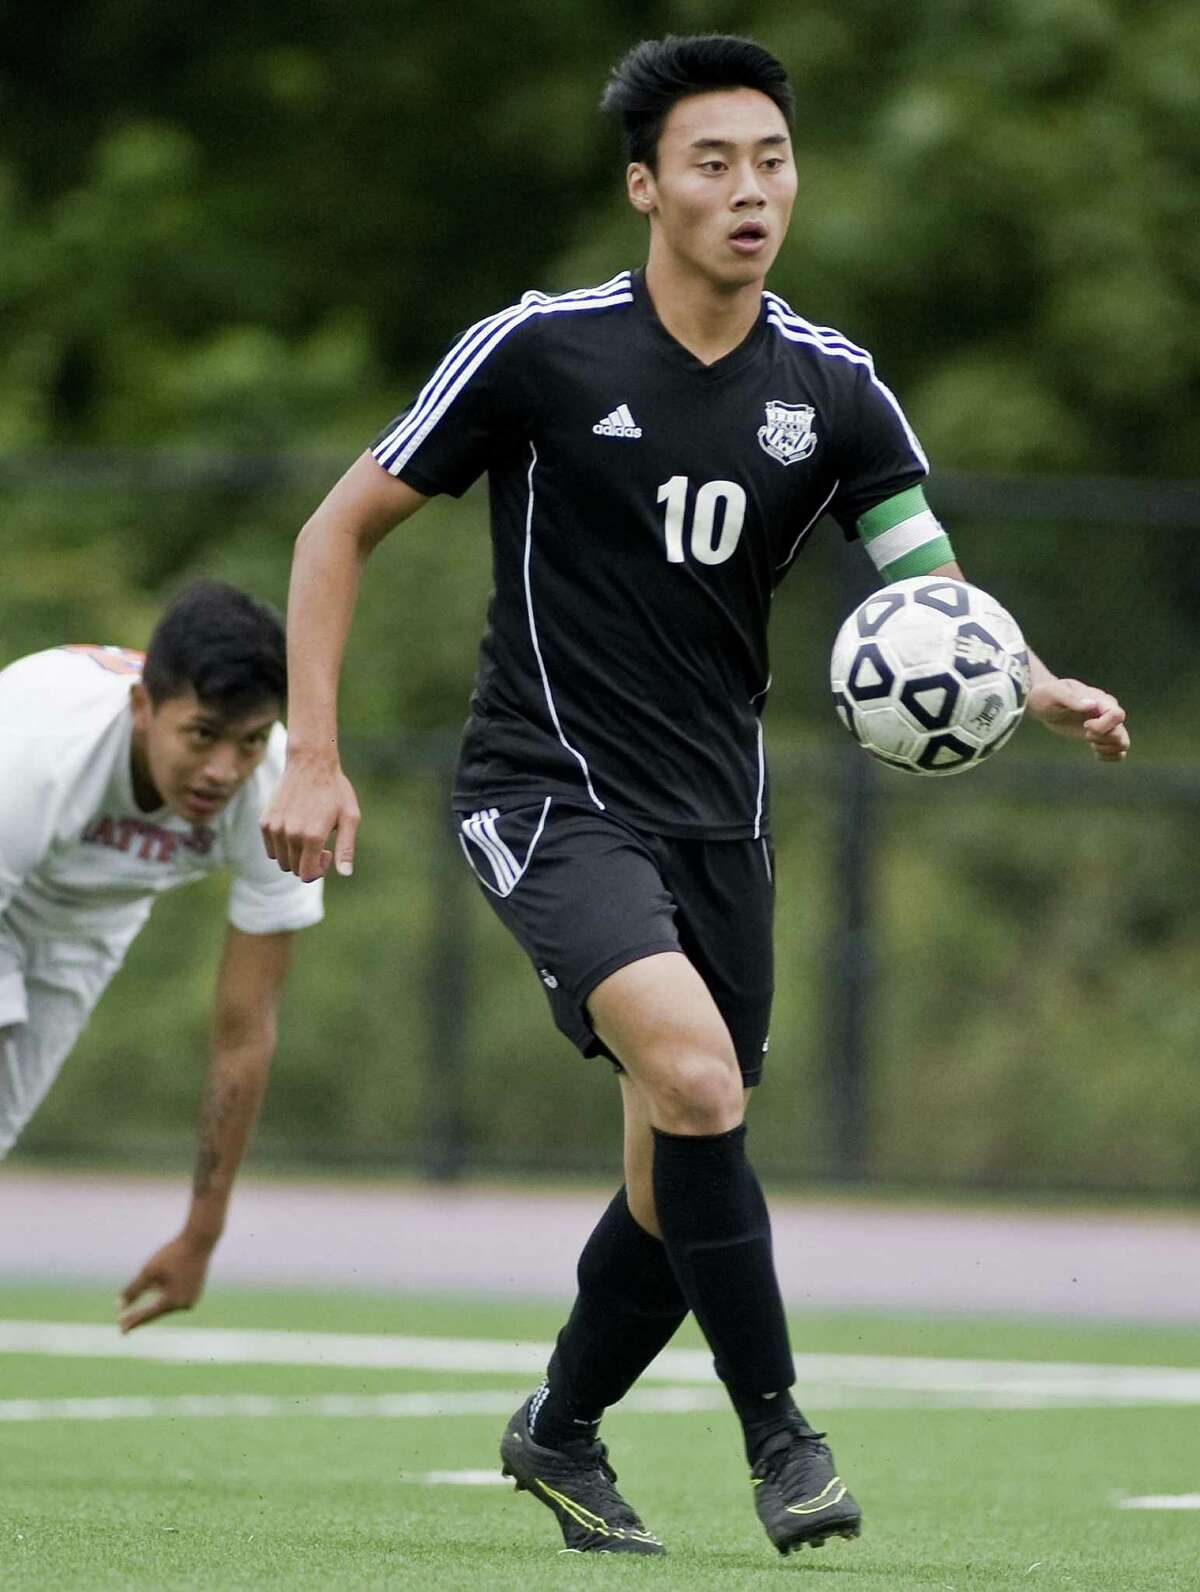 Thang Dao is a key player for Trumbull, which enters the FCIAC tournament 12-0-4.